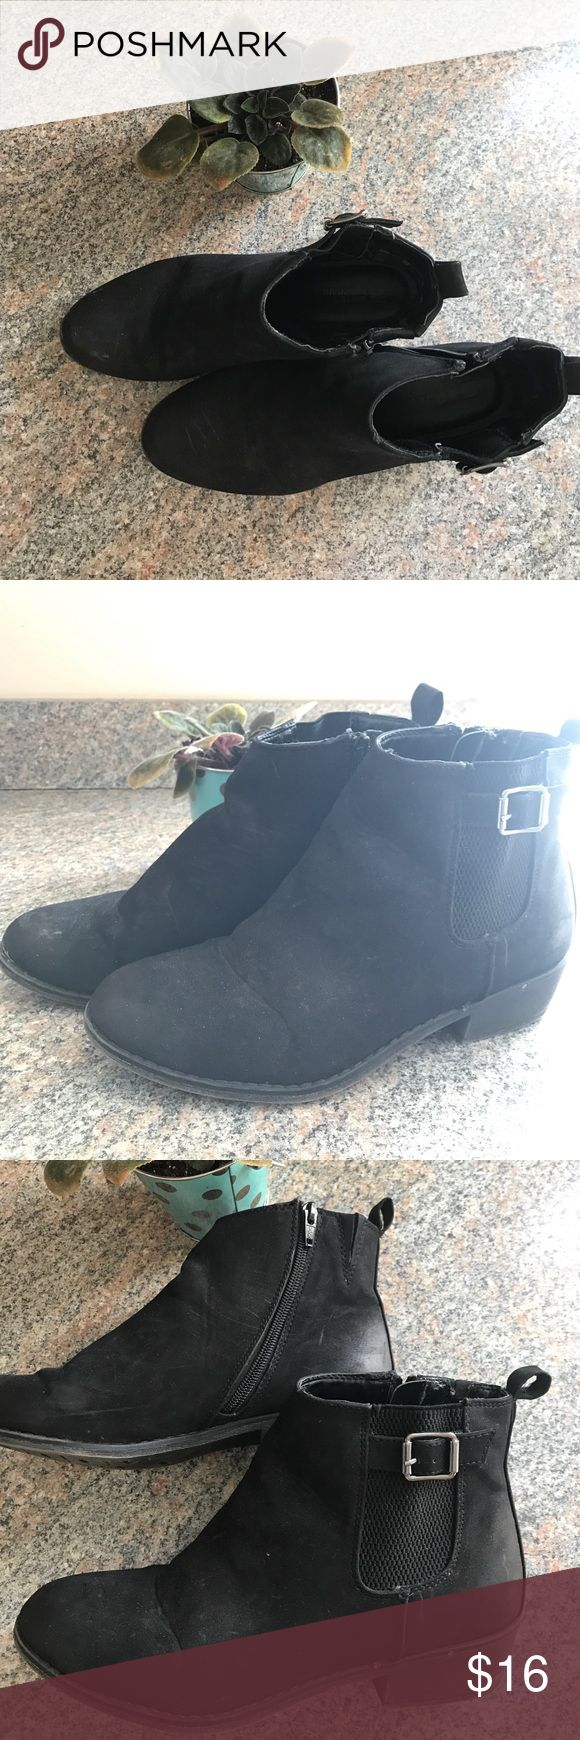 White Mountain Black Booties Short black boots from White Mountain. Very comfortable and easy to slip on and off. Normal wear and tear but still in great shape. white mountain Shoes Ankle Boots & Booties